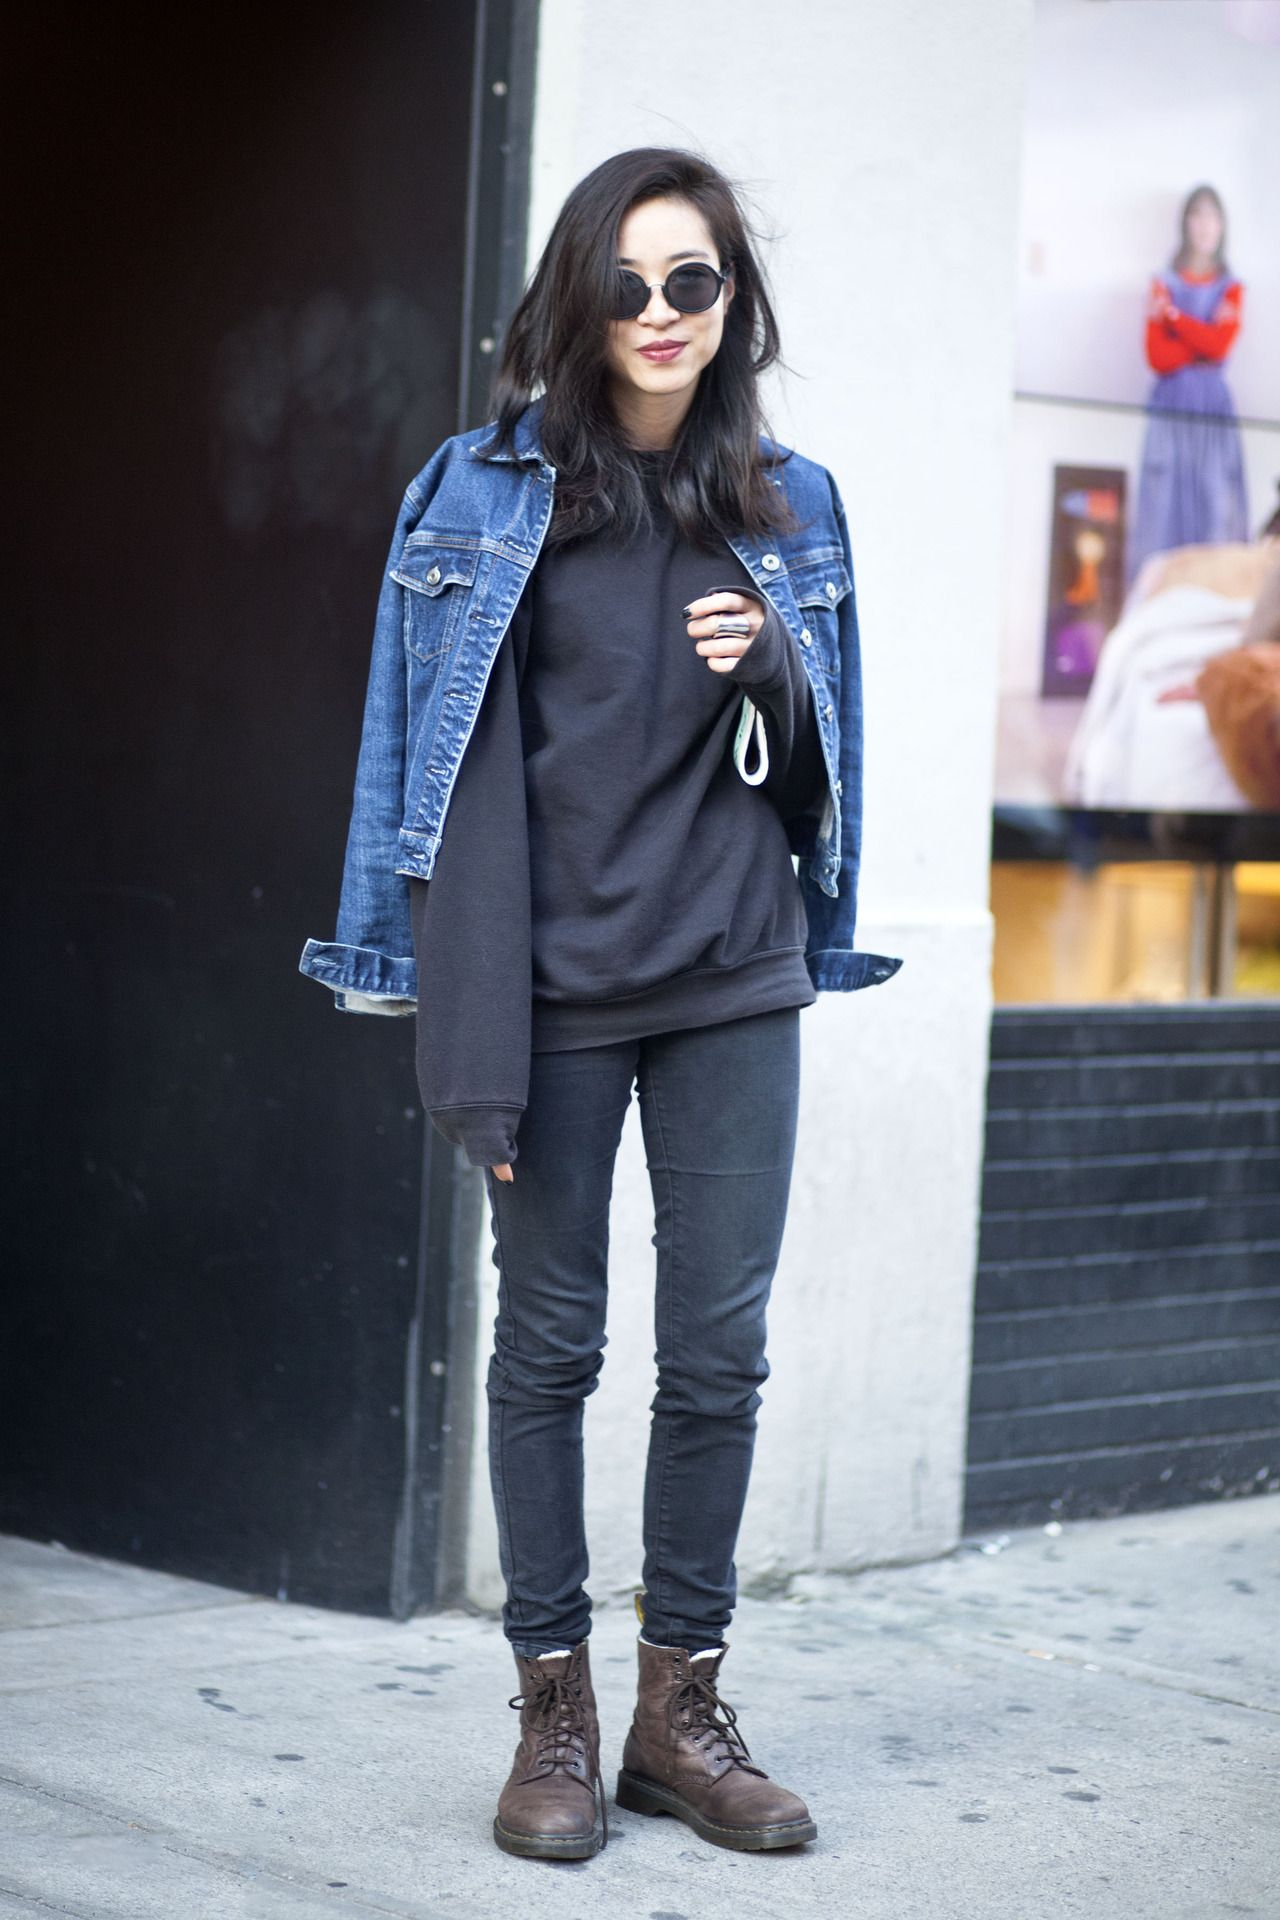 Denim jacket black sweatshirt black skinny jeans brown lace-up boots. 4e3d4a8489